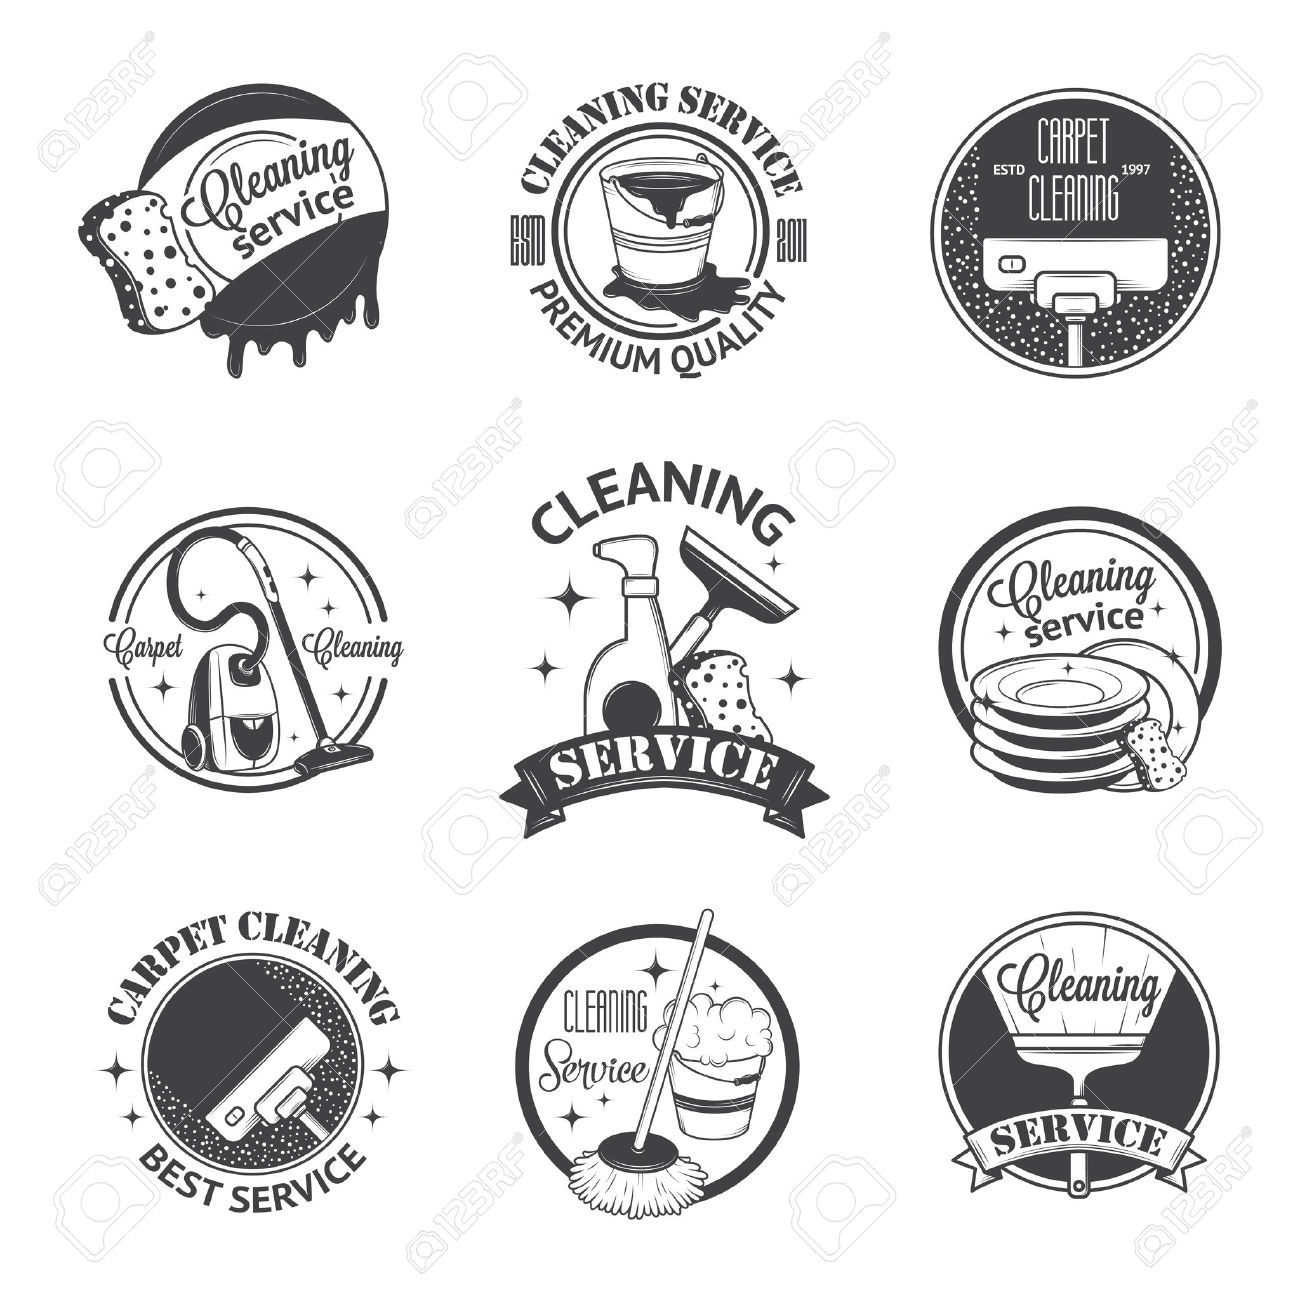 Stock Vector cleaning logos Cleaning company logo